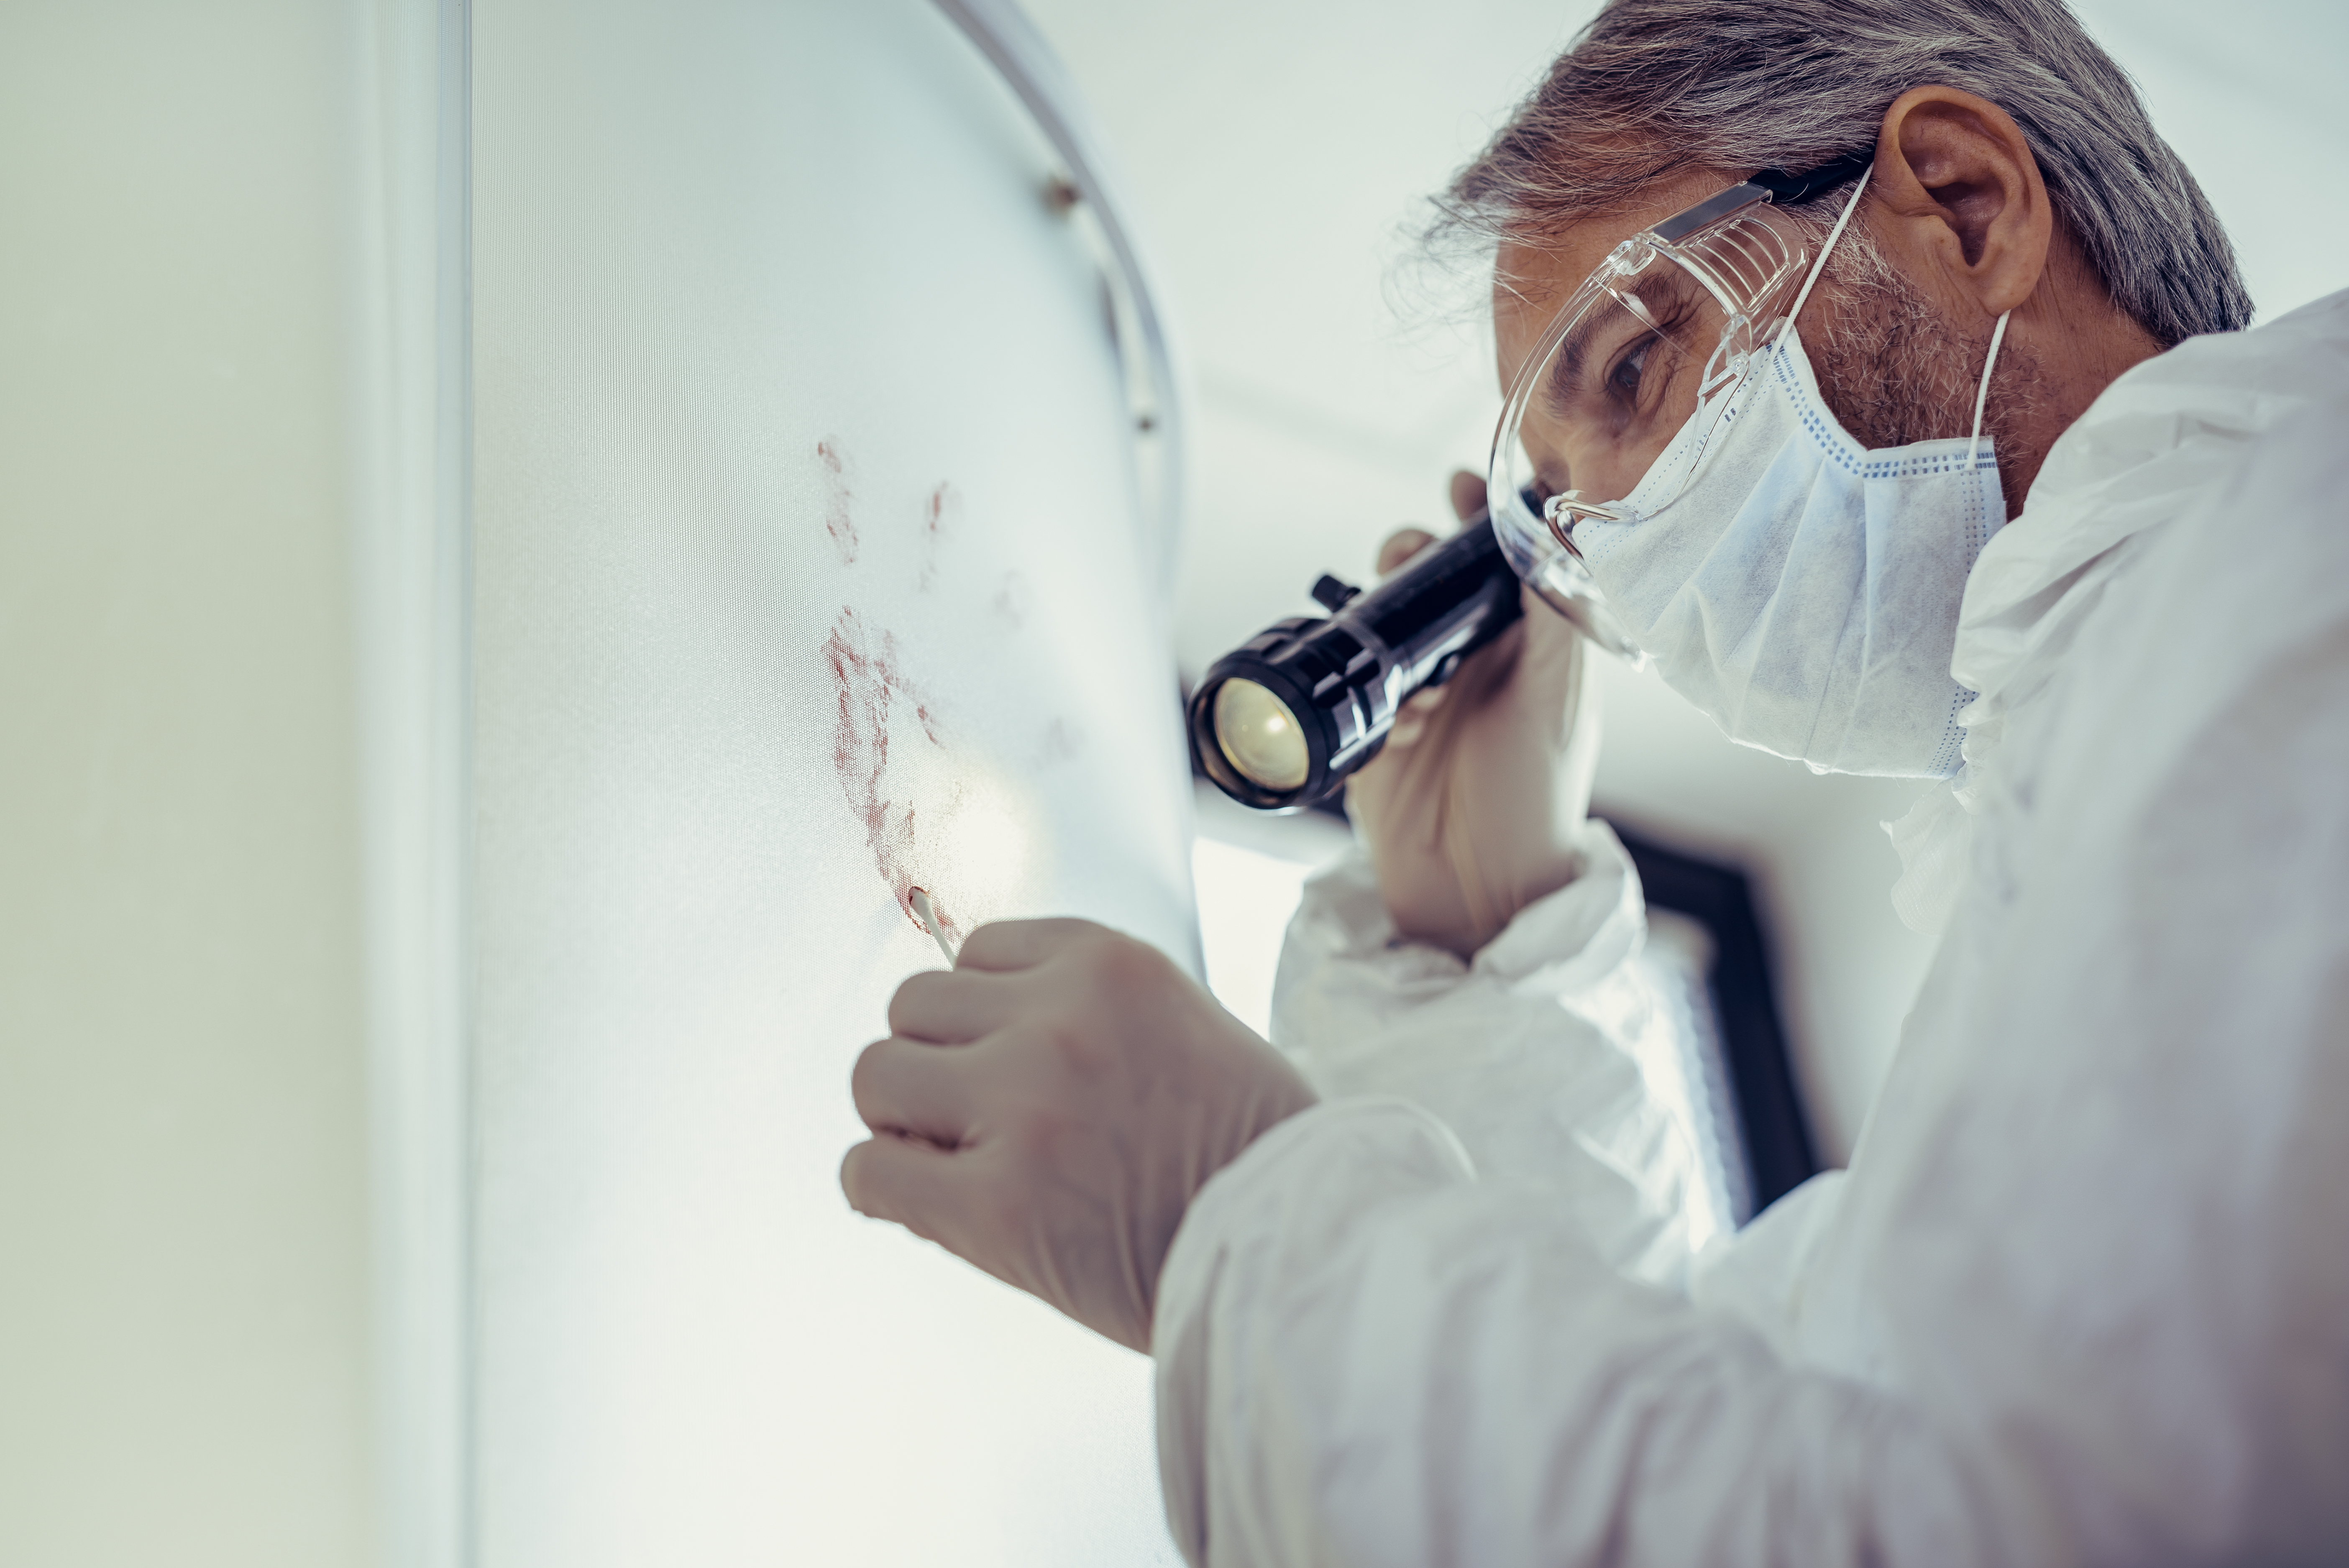 which entails specific training in forensic entomology